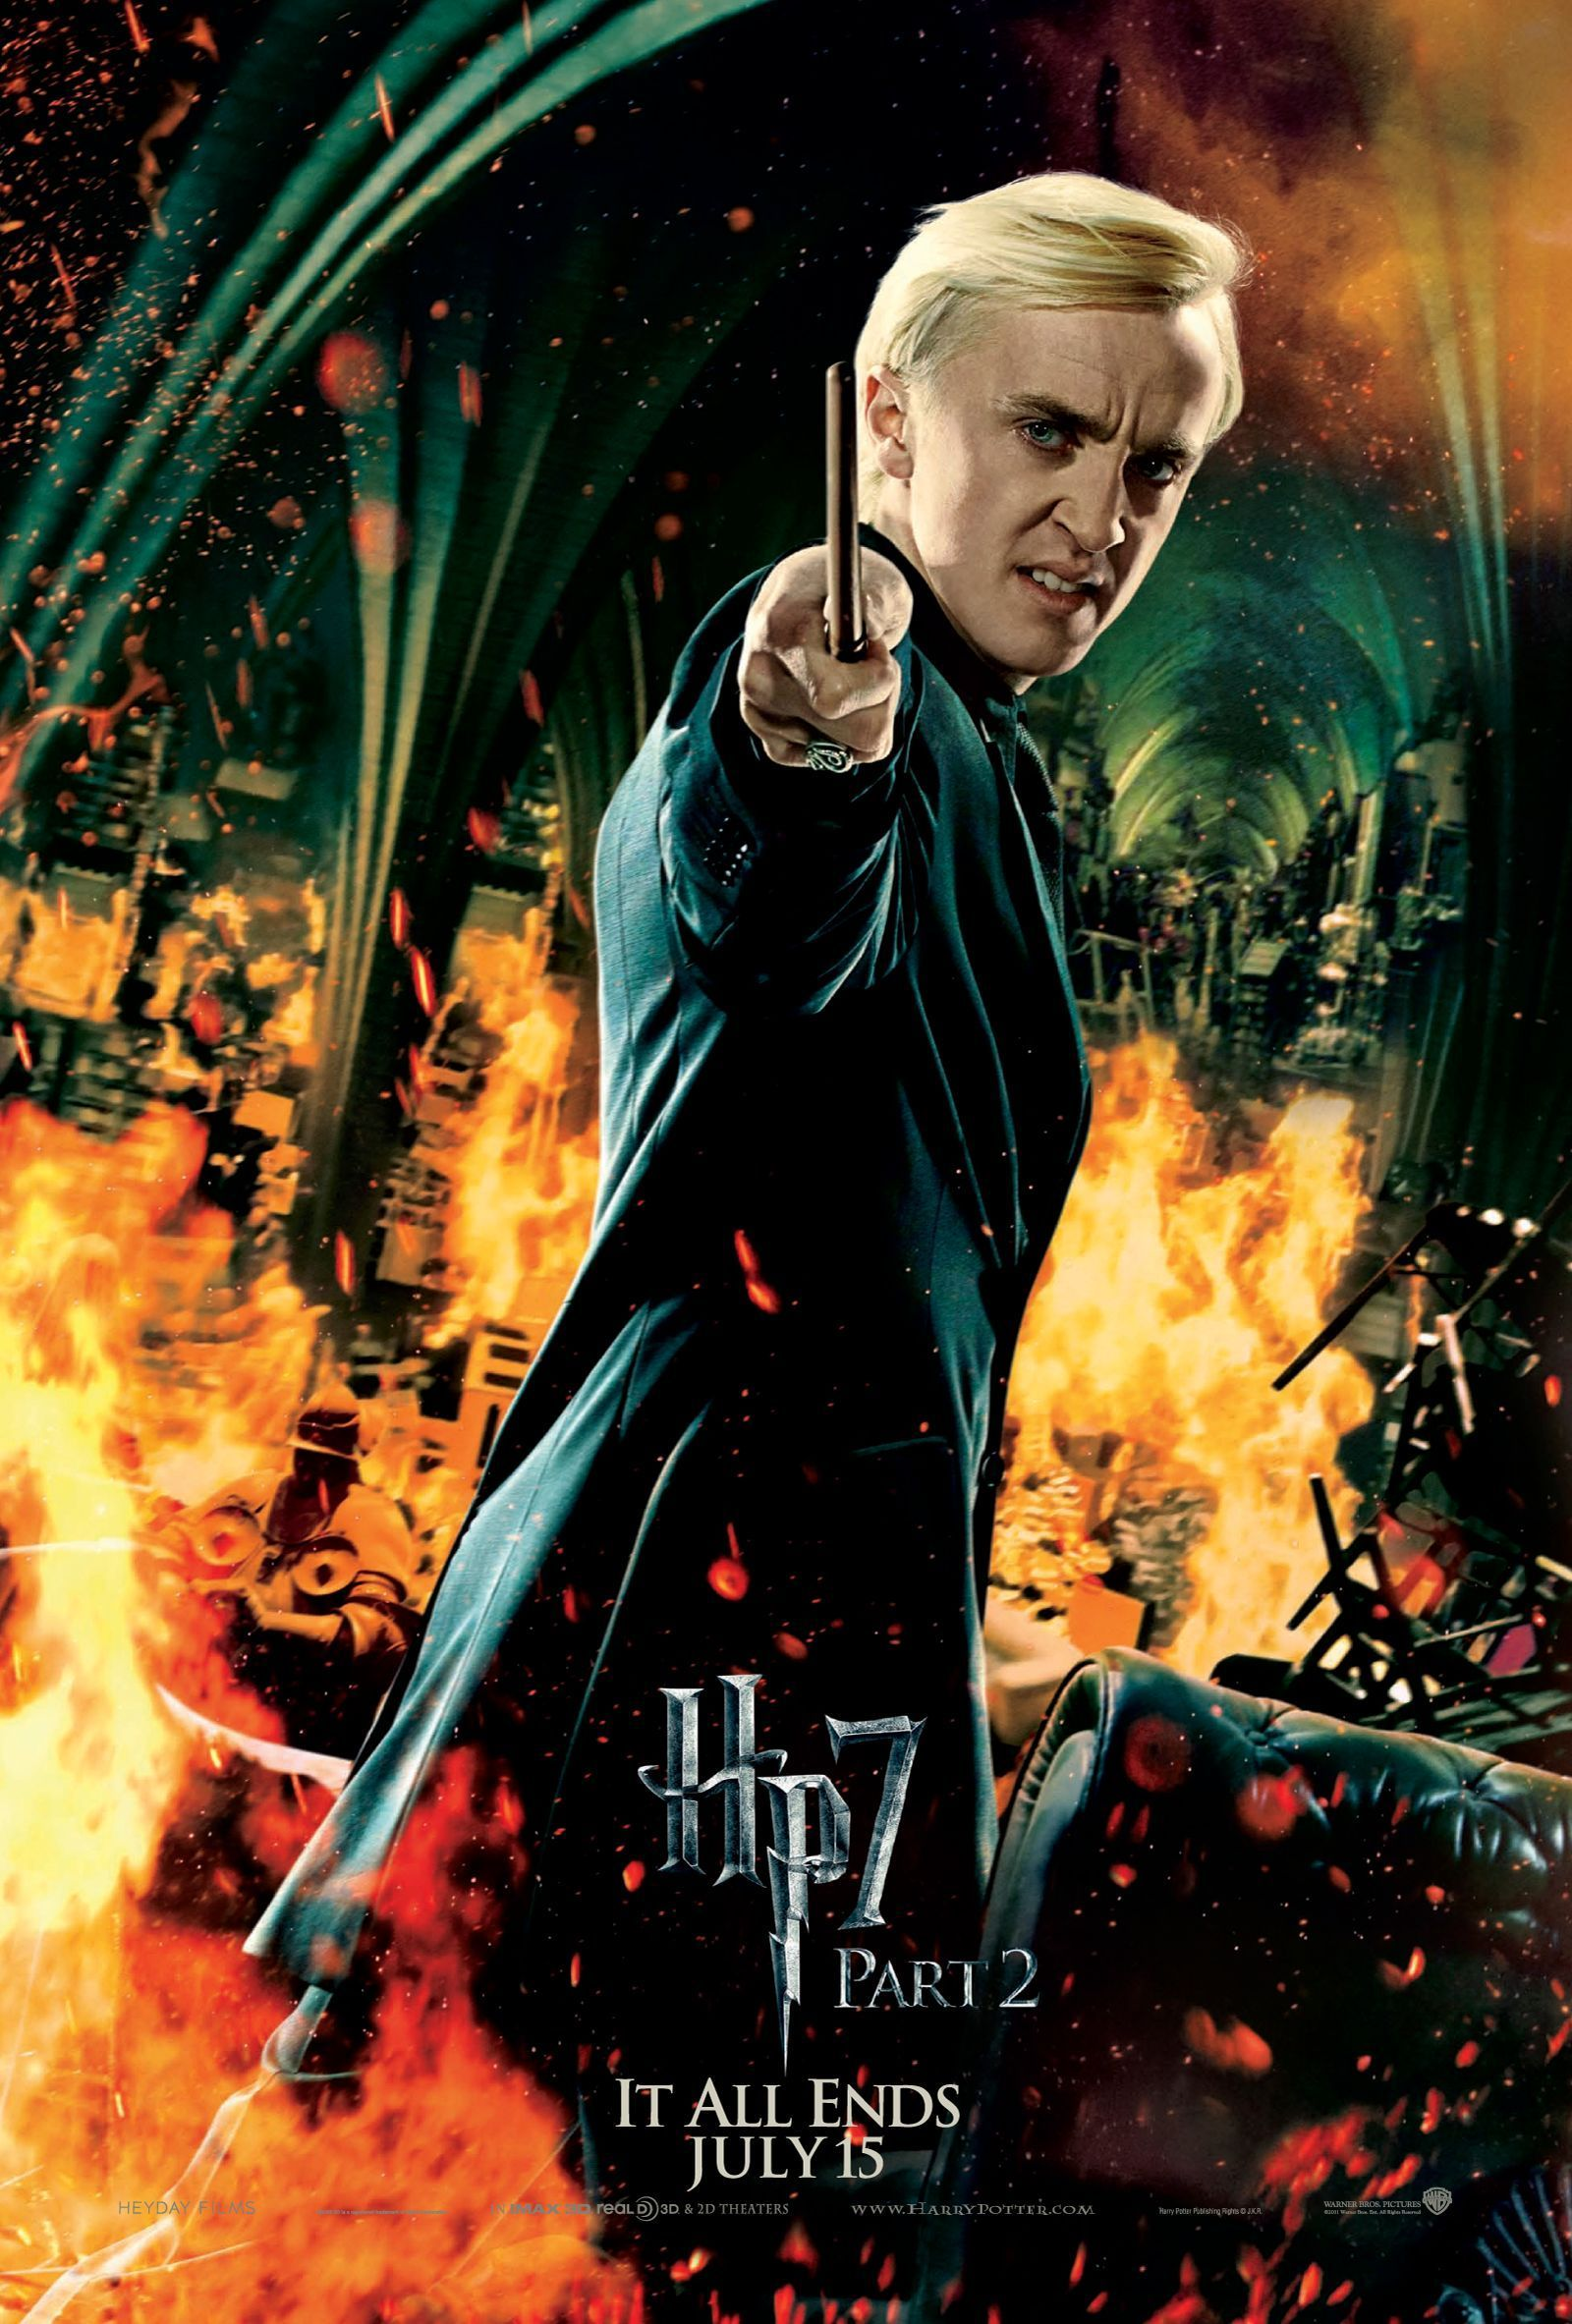 Draco Malfoy Wallpaper Deathly Hallows Draco Malfoy Deathly Hallows